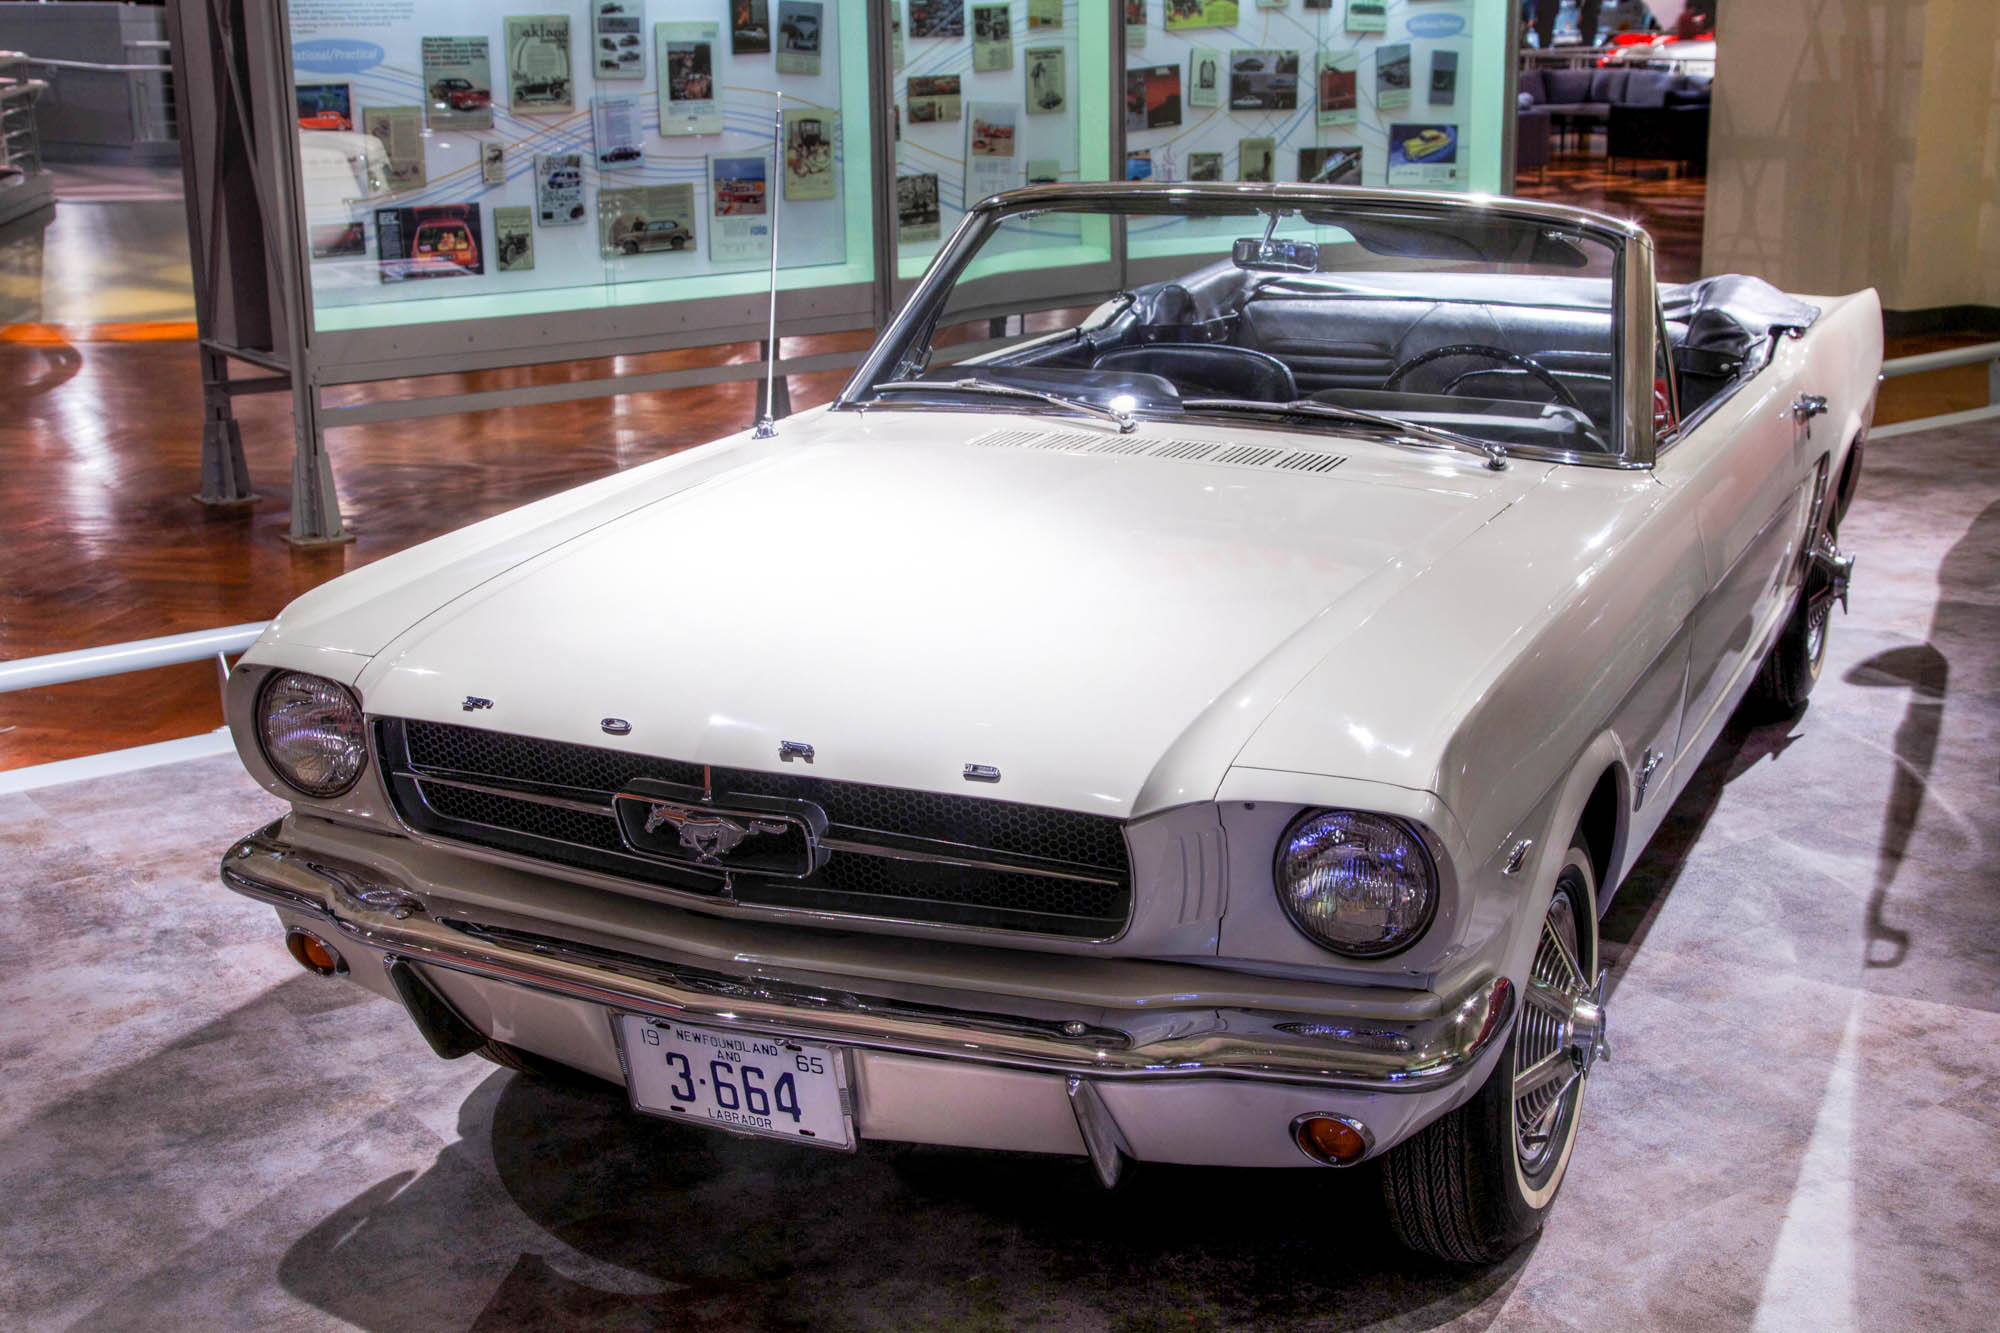 Ford Mustang Wikipedia 1996 Convertible Top Wiring Diagram 1964 Serial 1 Sold To Stanley Tucker Who Was Given The One Millionth In Exchange For His Historic Car